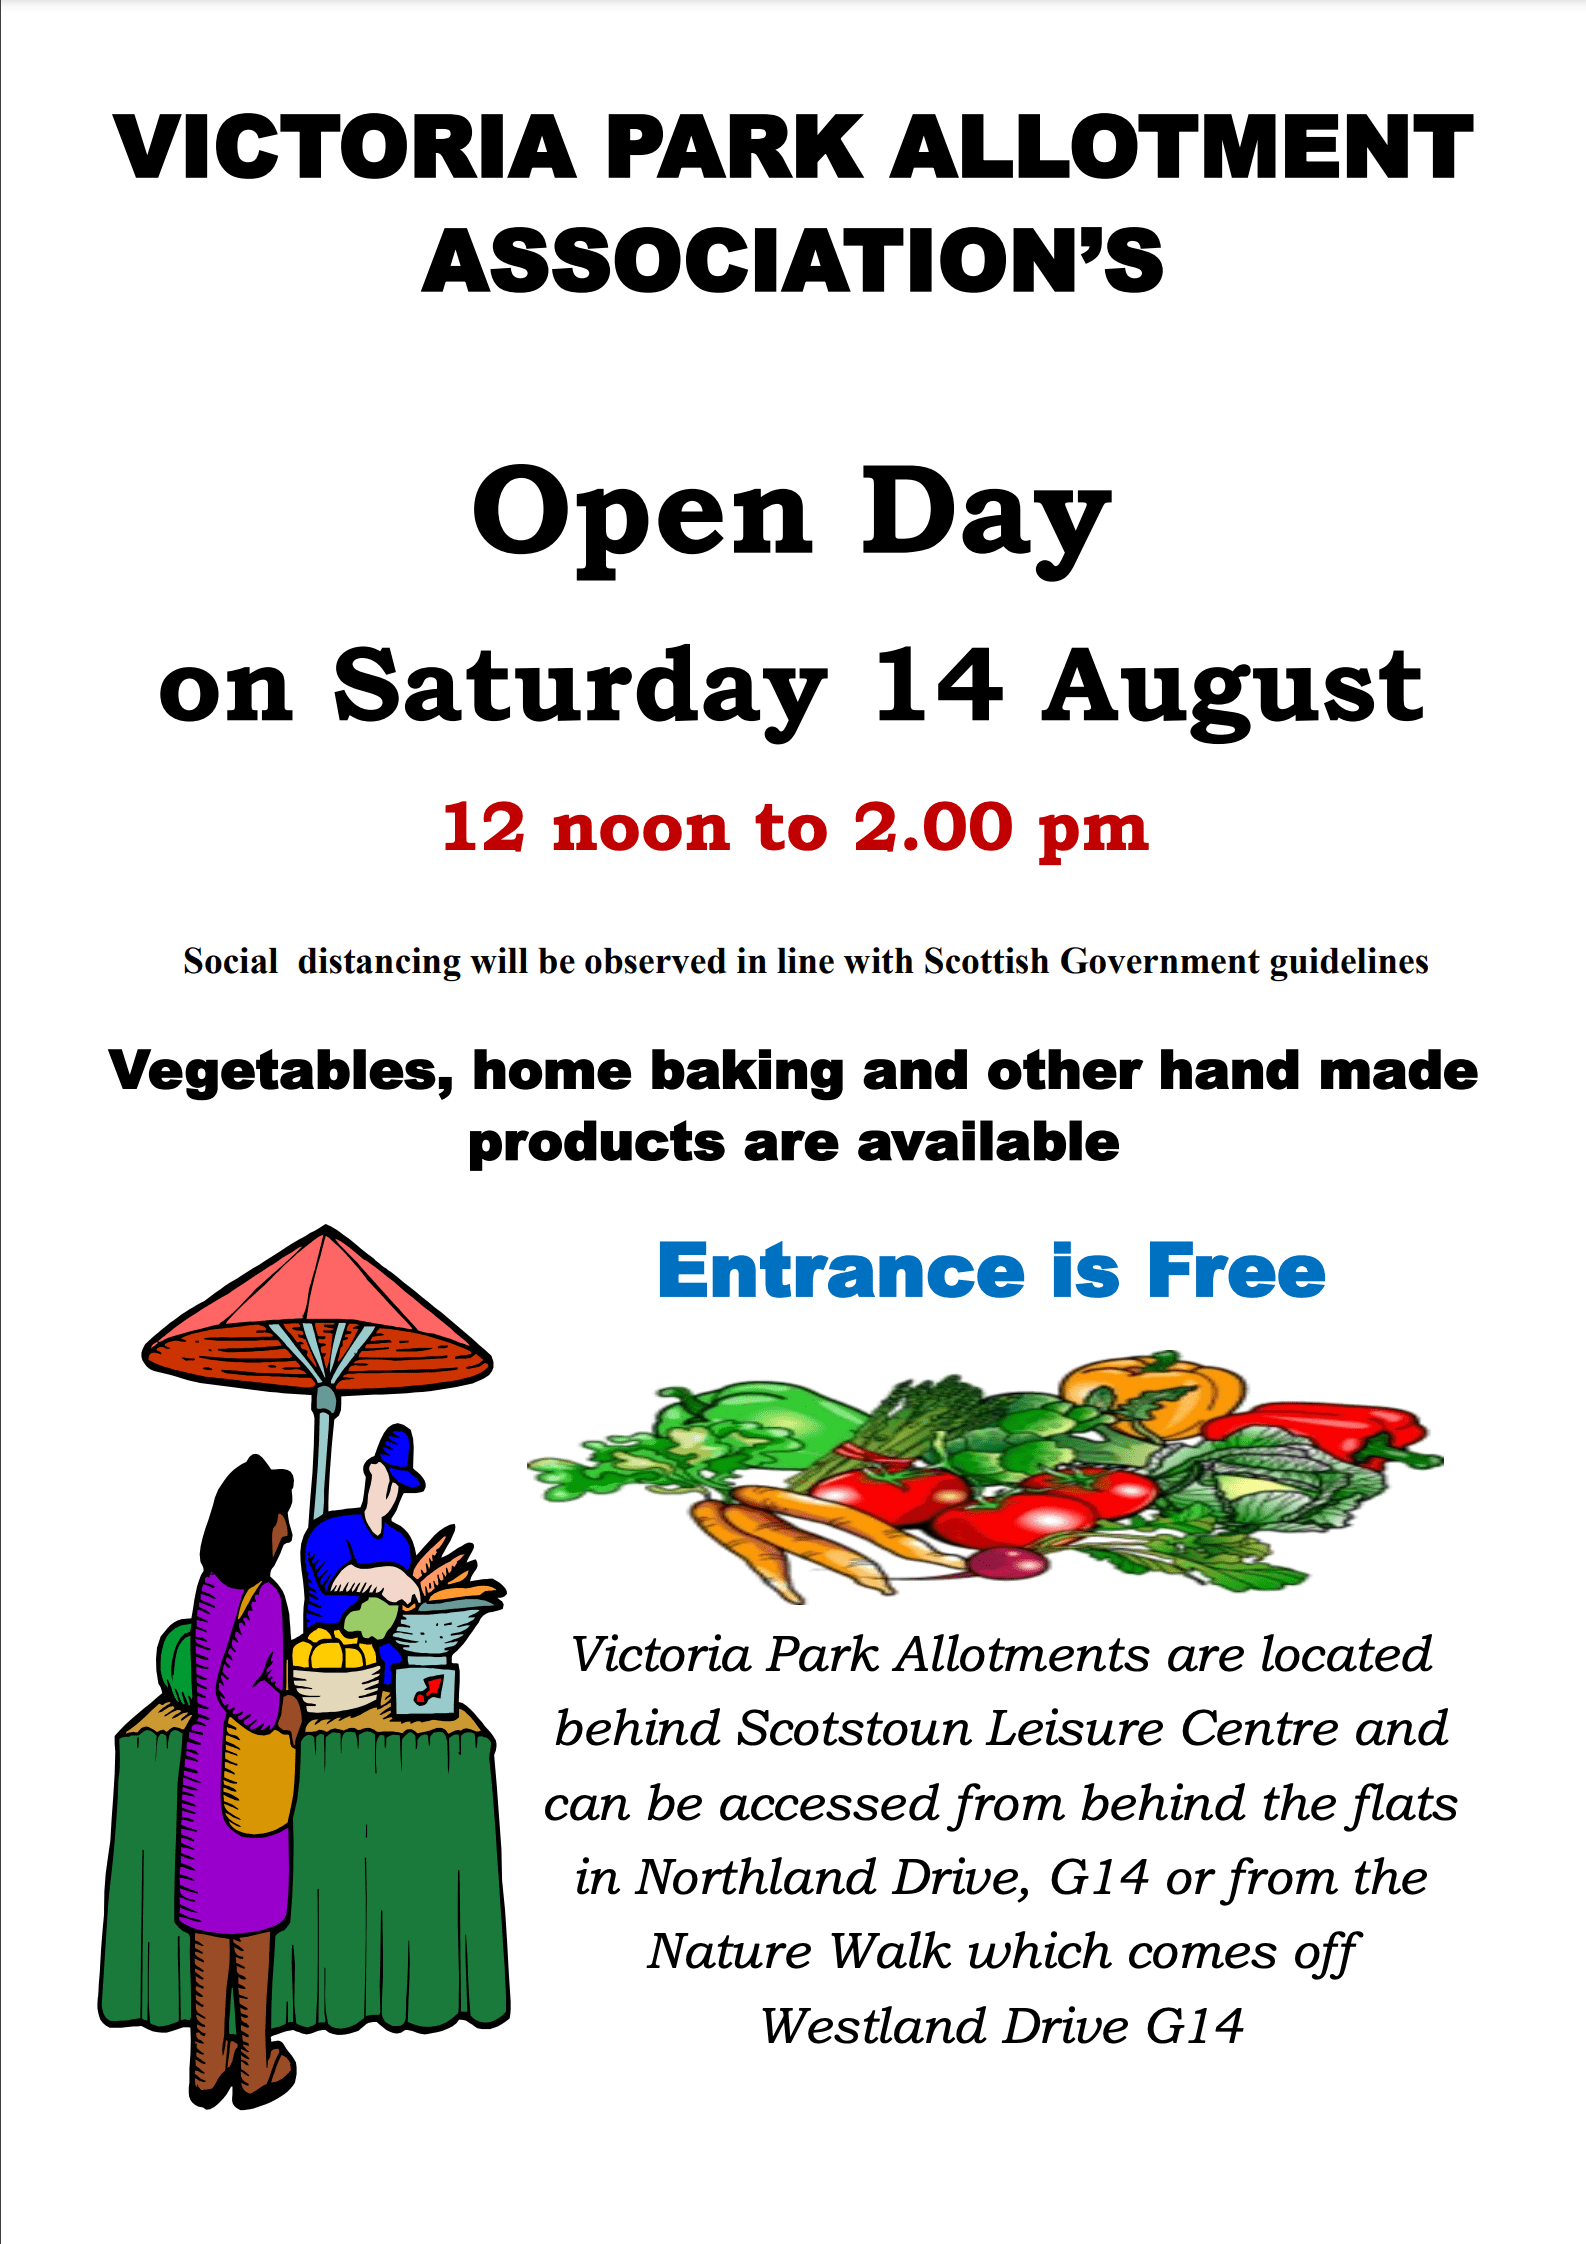 VICTORIA PARK ALLOTMENT ASSOCIATION'S Open Day on Saturday 14 August 12 noon to 2.00 pm Social distancing will be observed in line with Scottish Government guidelines Vegetables, home baking and other hand made products are available Entrance is Free Victoria Park Allotments are located behind Scotstoun Leisure Centre and can be accessed from behind the flats in Northland Drive, G14 or from the Nature Walk which comes off Westland Drive G14